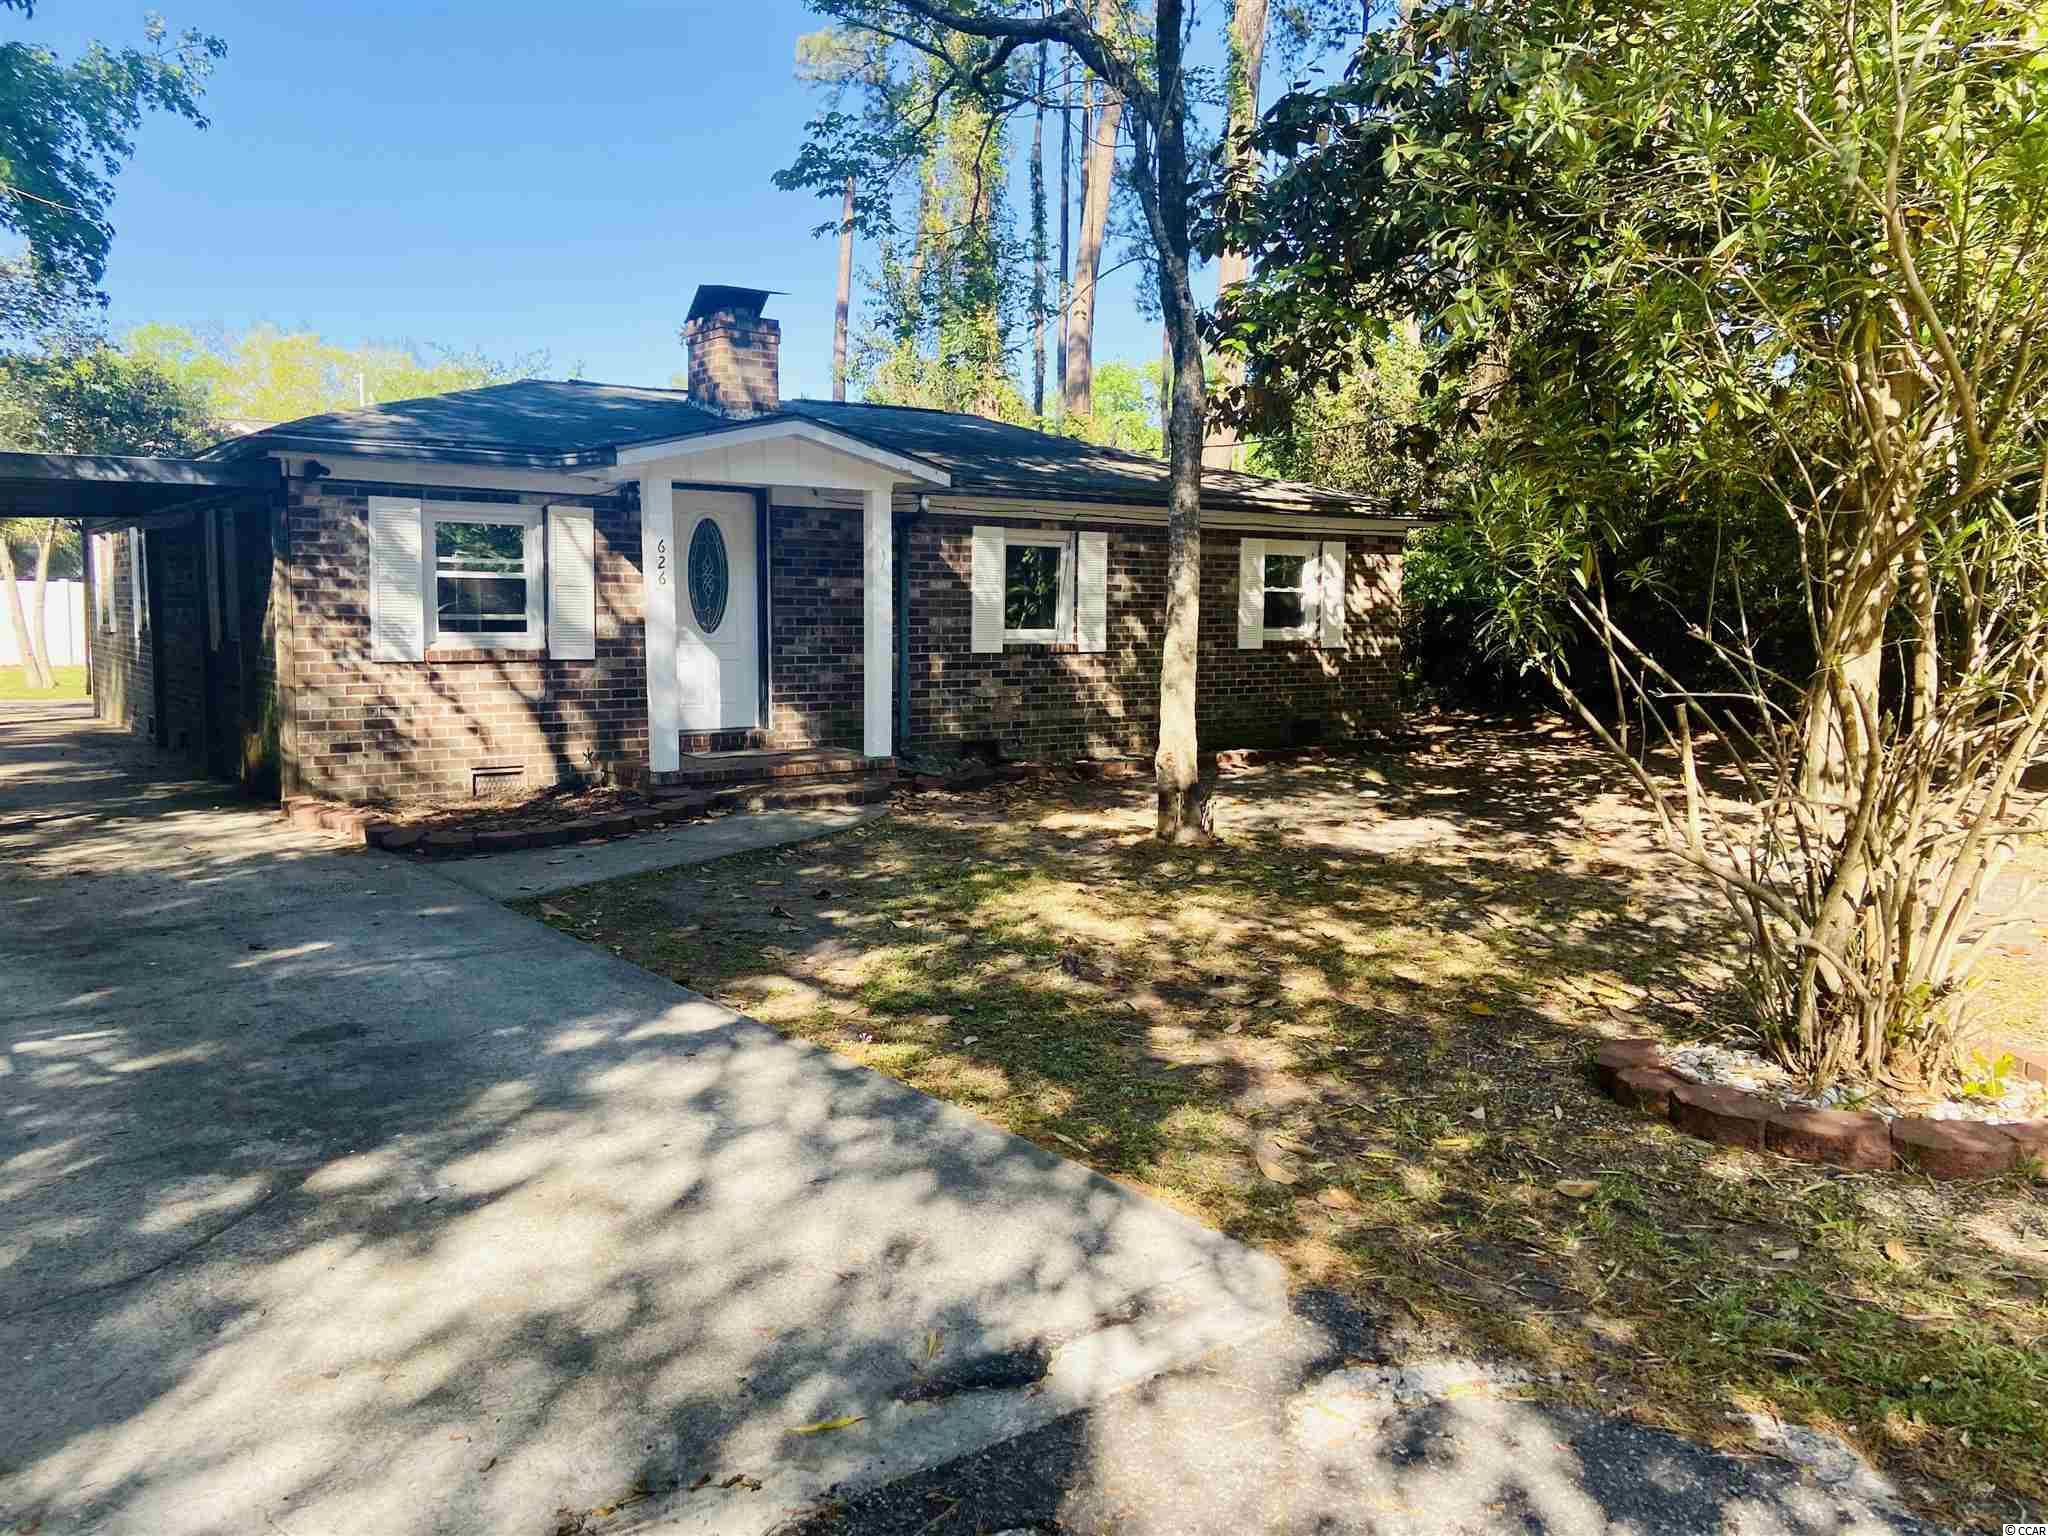 Priced to sell! Located east of 17 in Surfside Beach, this 3 bedroom and 2 bathroom is ready for new ownership! Walking distance to the ocean, No HOA,  and huge back yard makes this is a gem! Don't miss out on this one, some updating needed thus the price, sold as is.